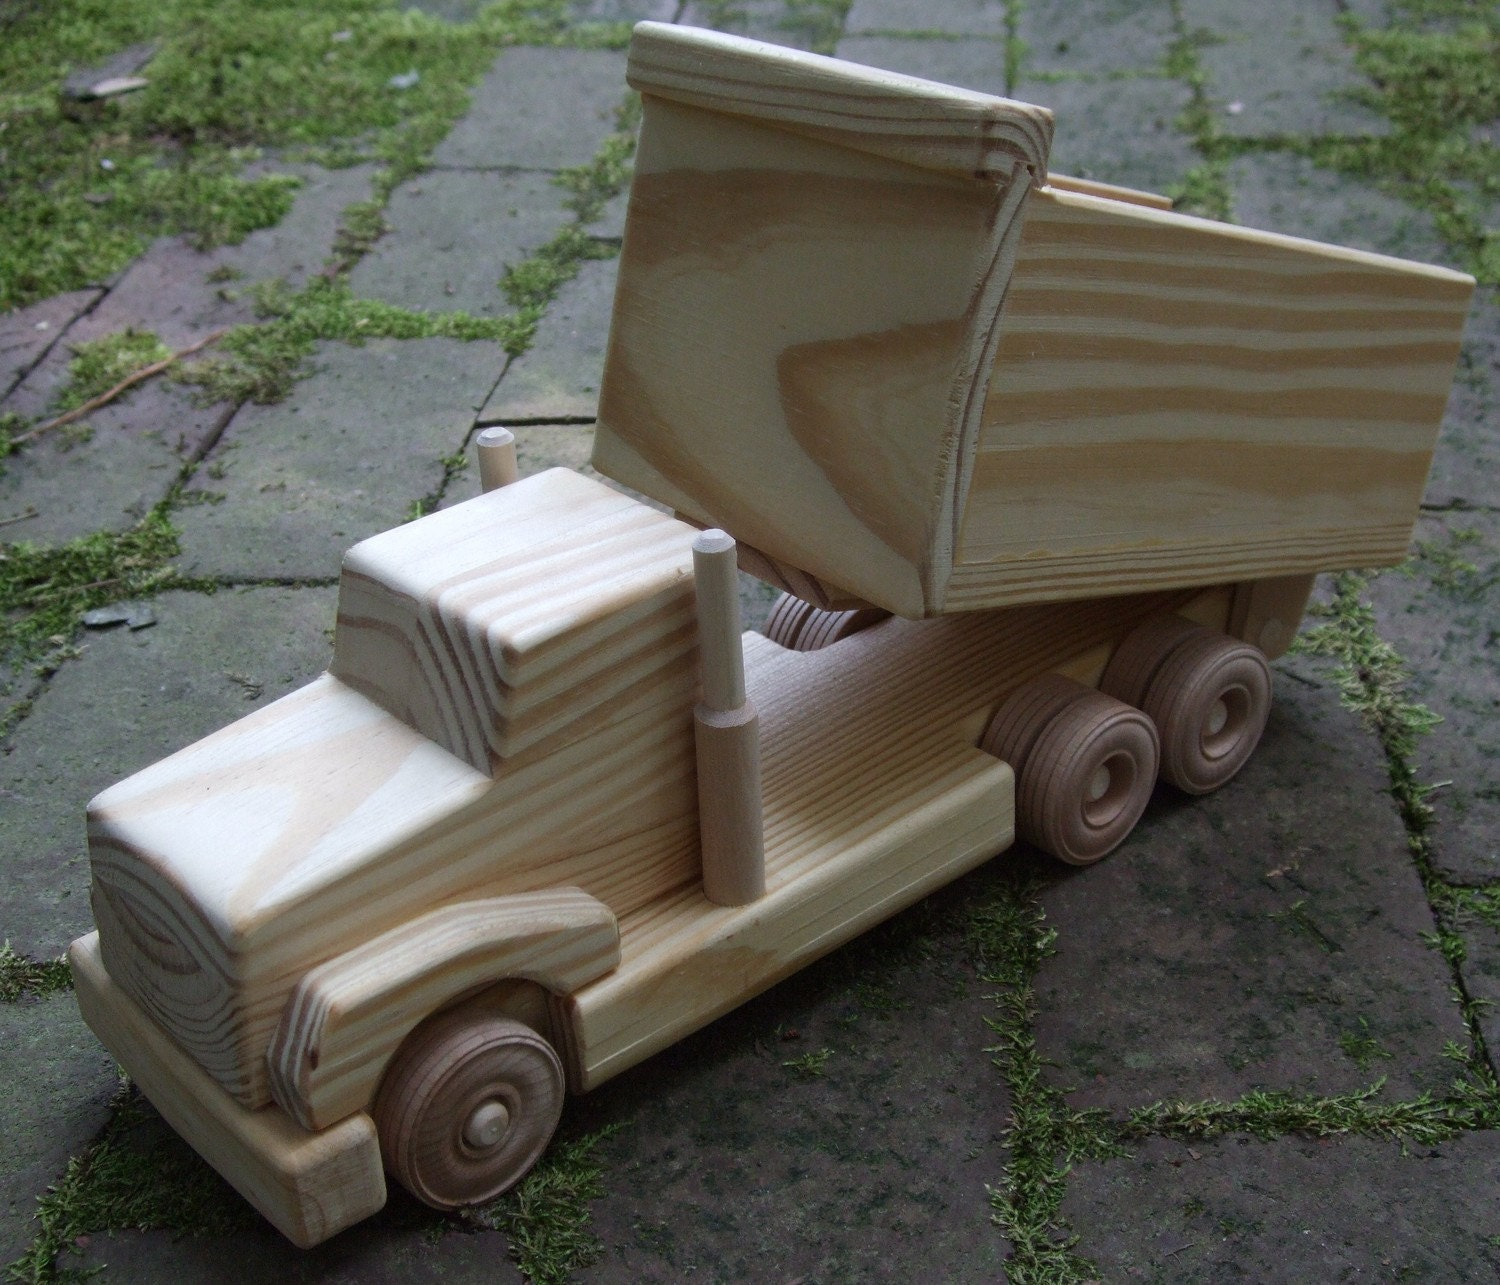 Wooden Toy Dump Truck Plans for wood toy trucks popular woodworking ...